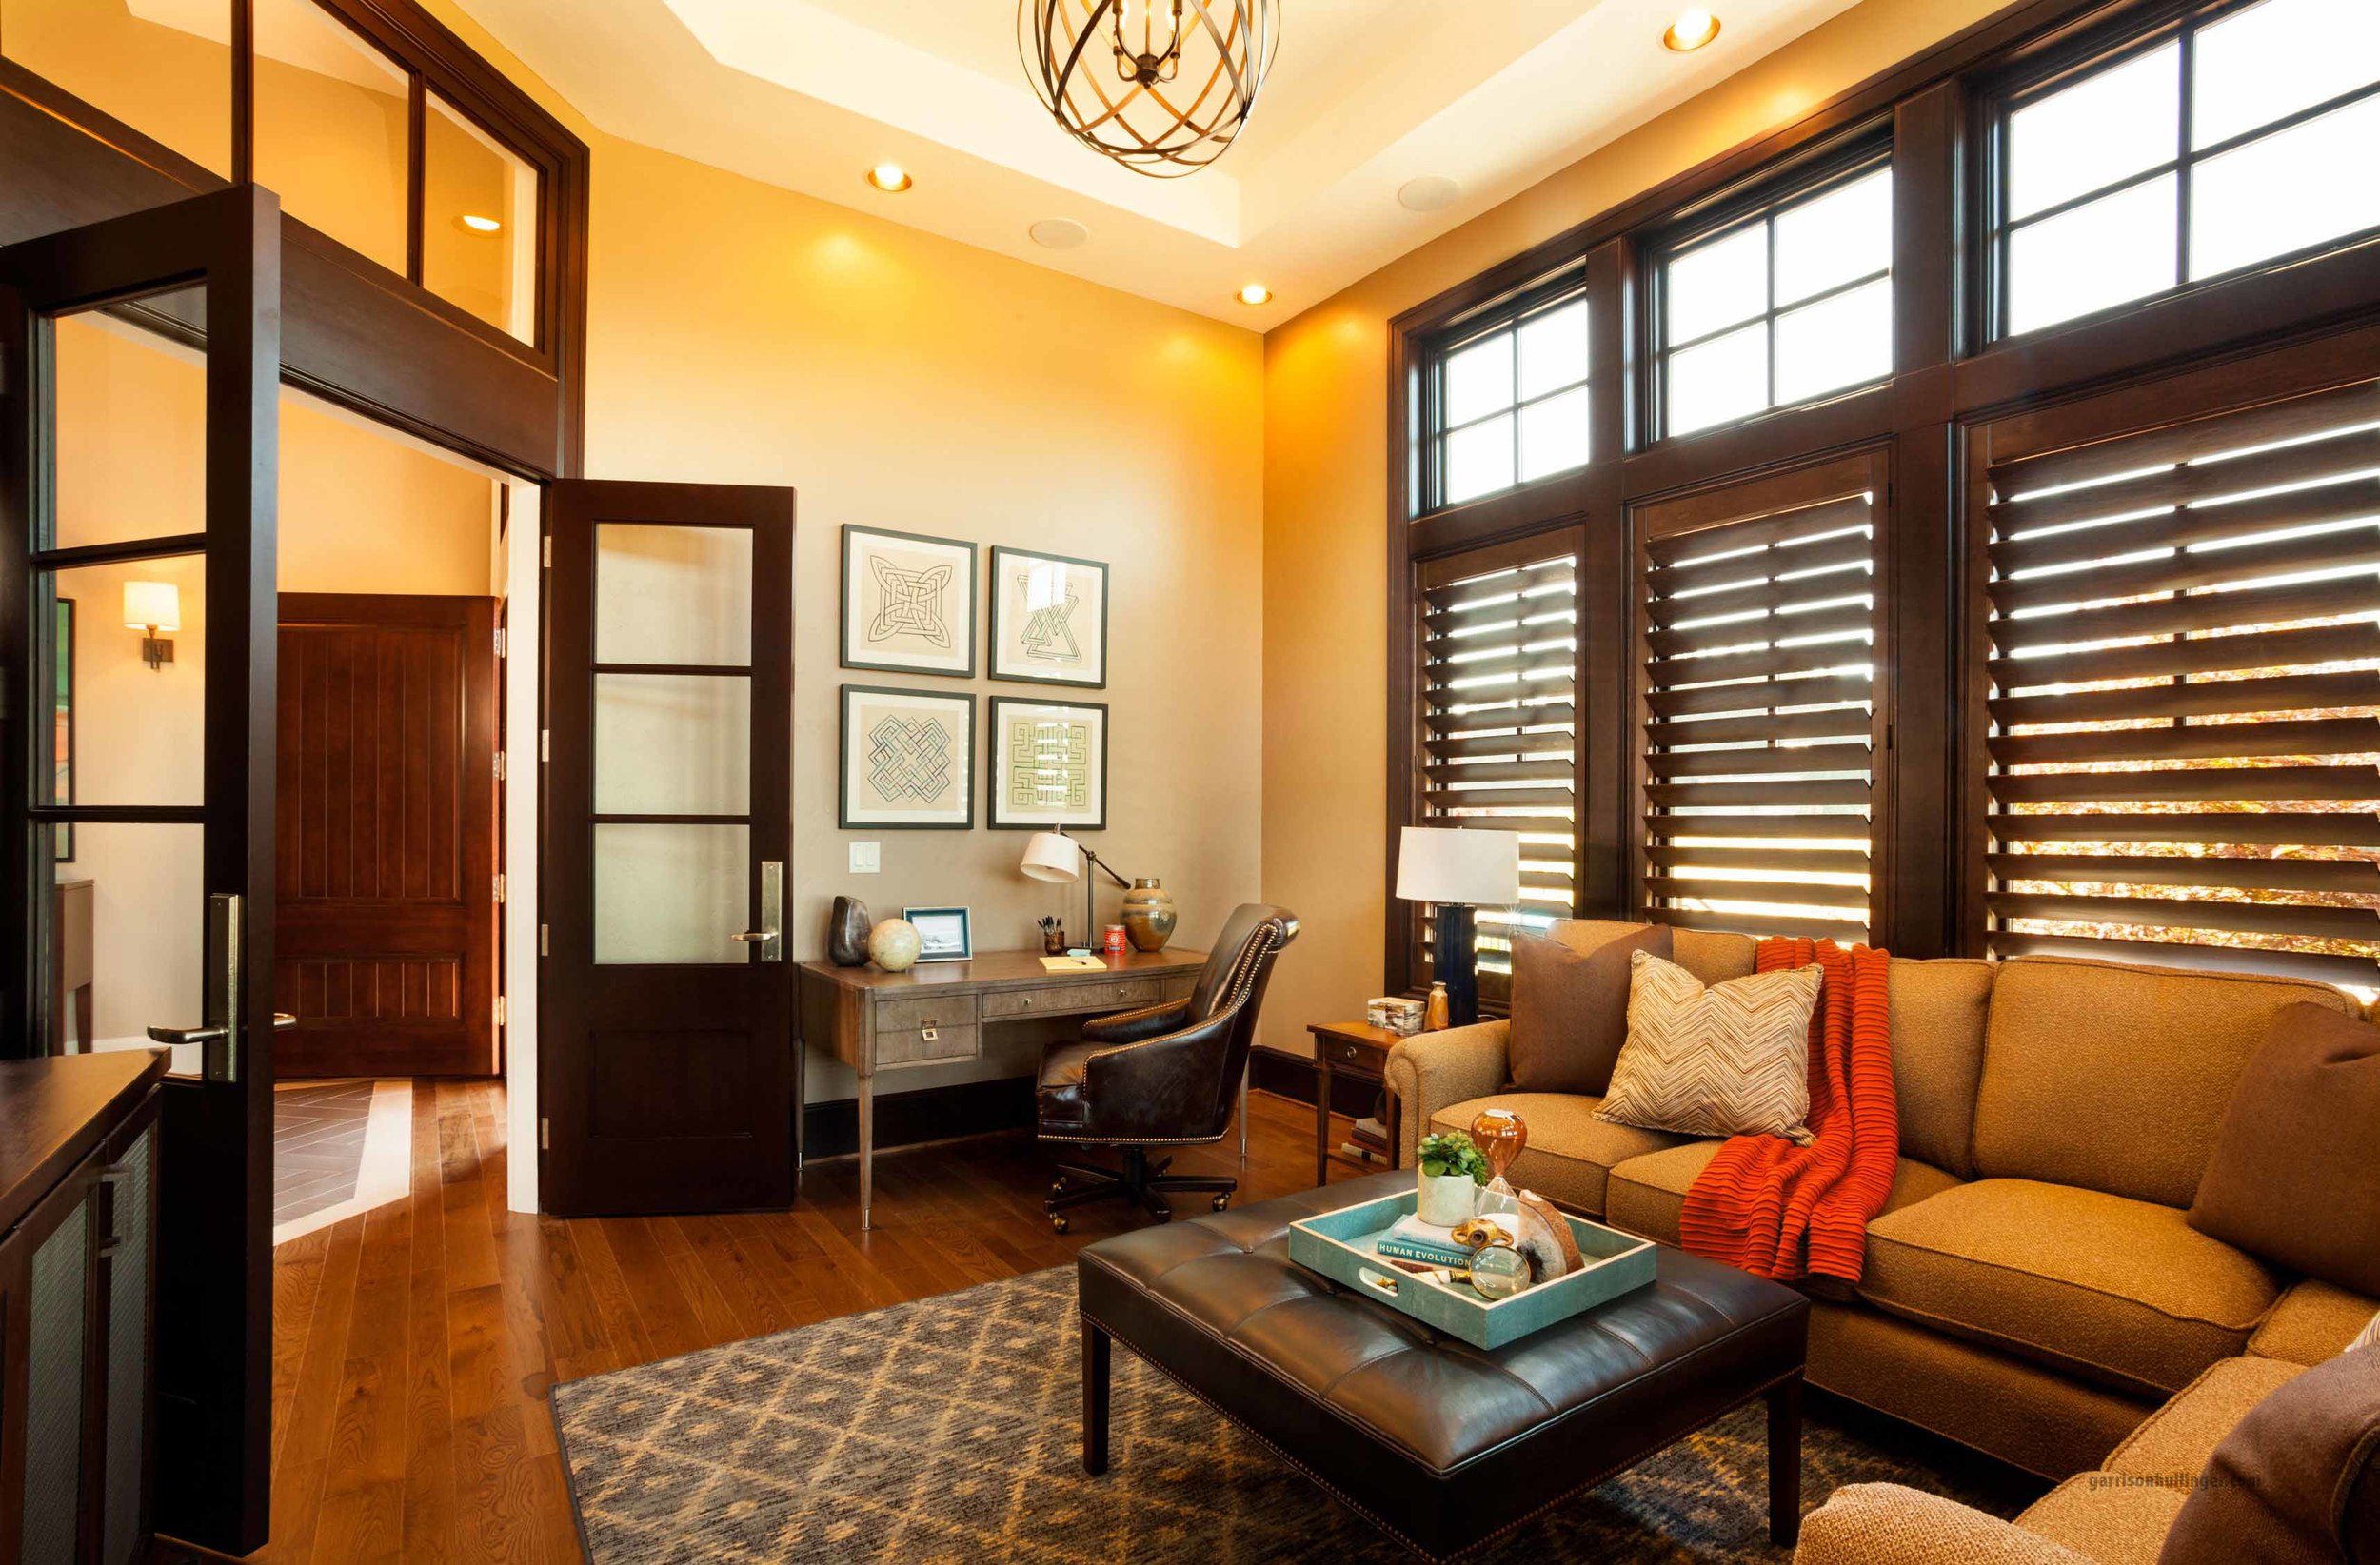 light controlling window treatments, dark wood window coverings, hunter douglas blinds used in interior design